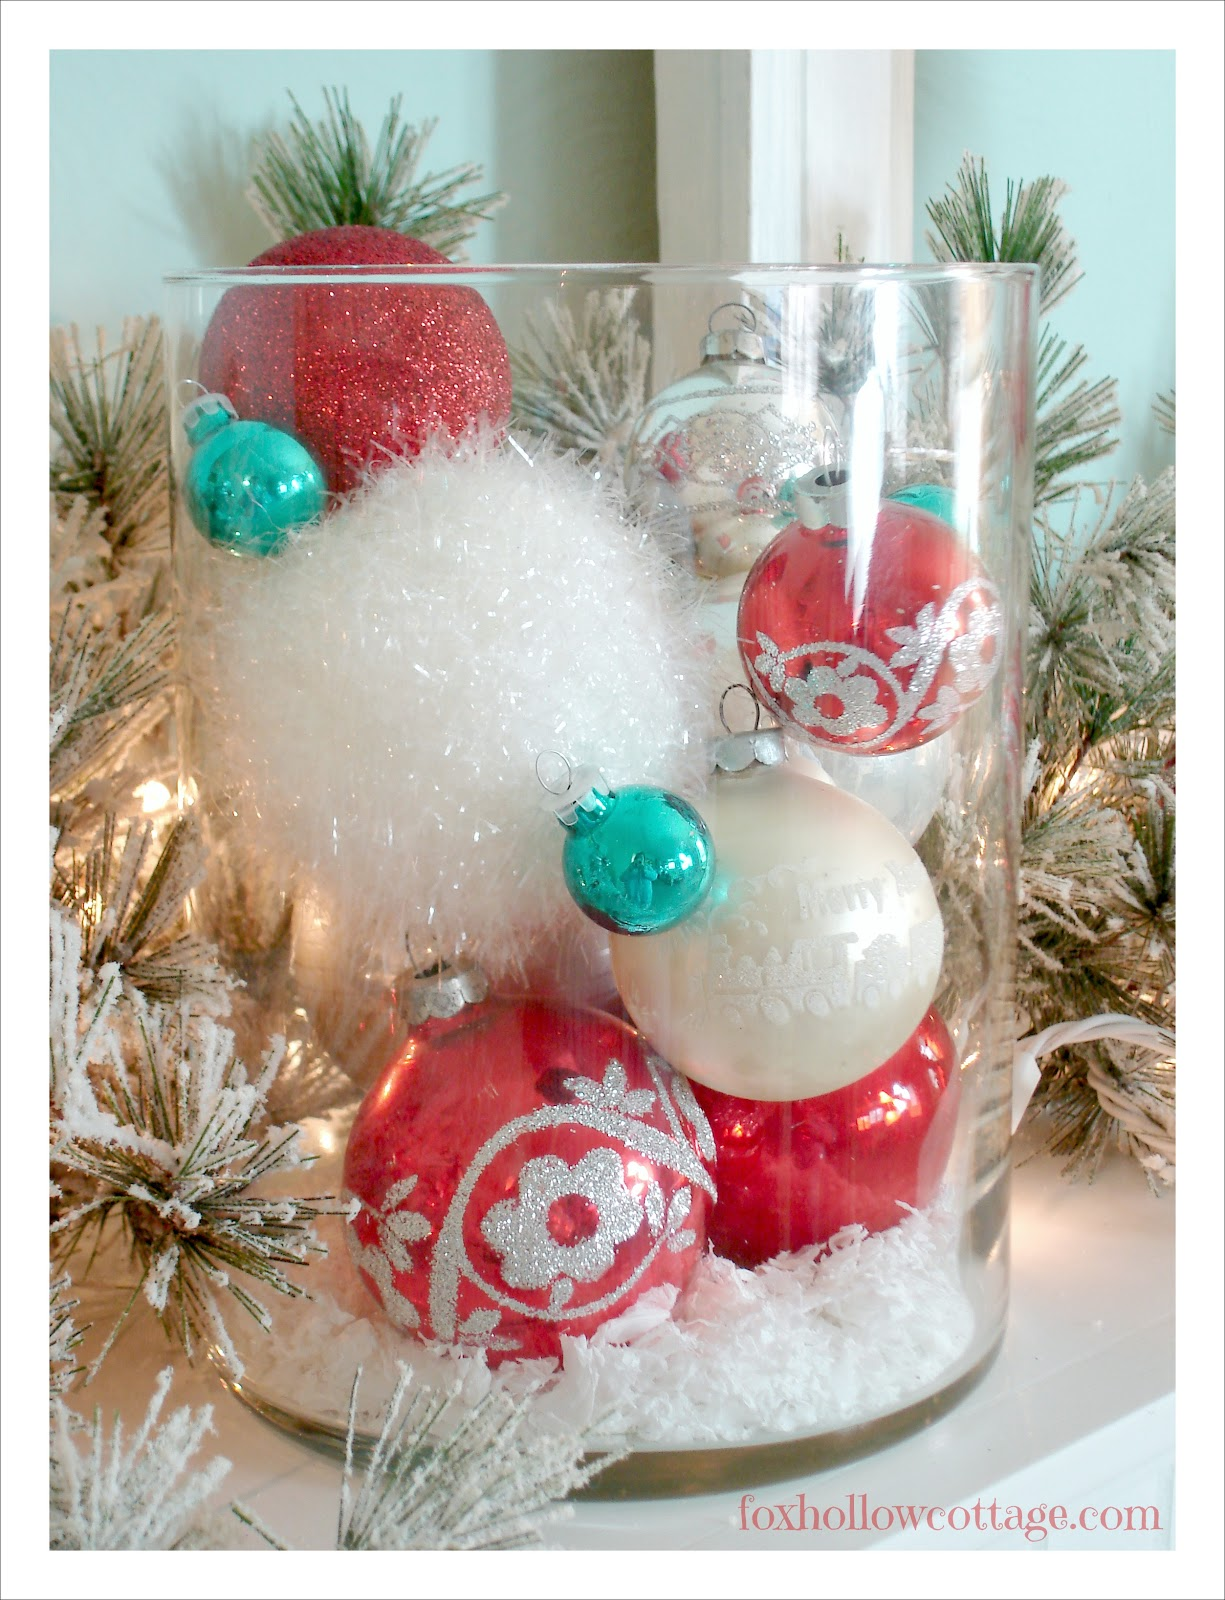 10 Quick Ideas For Decorating With Christmas Ornaments ...